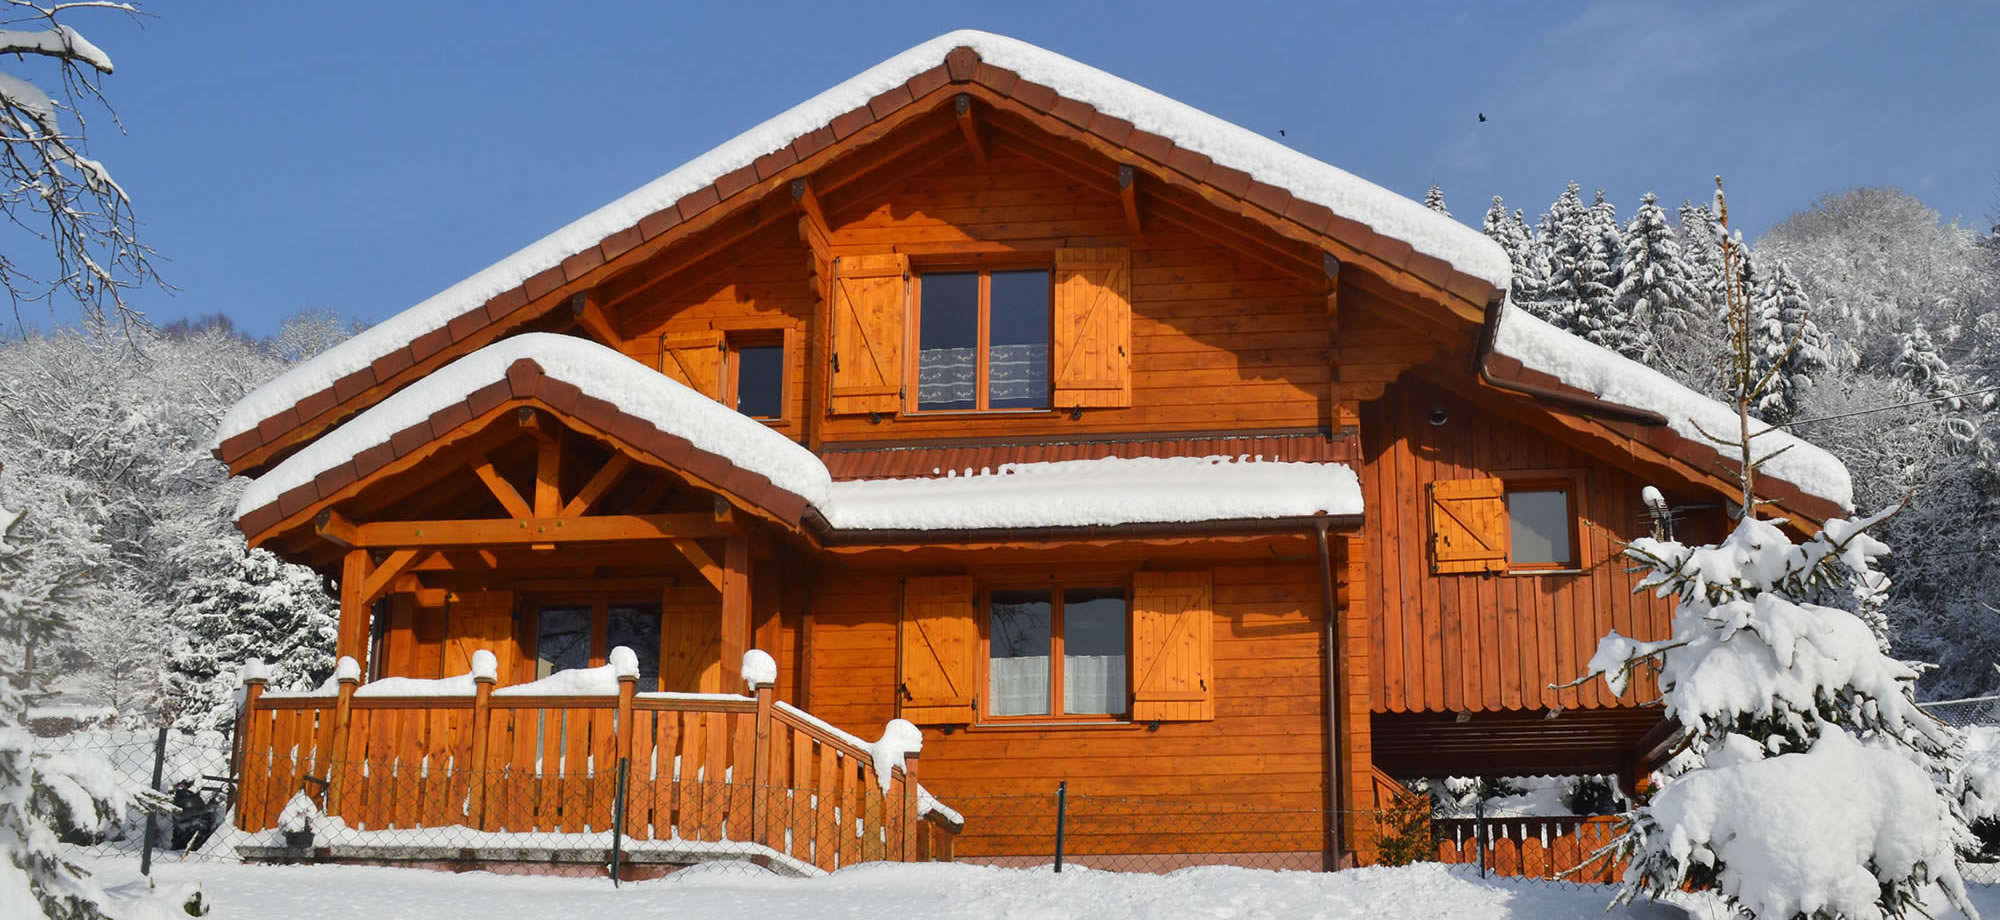 chalets rentals in the Vosges